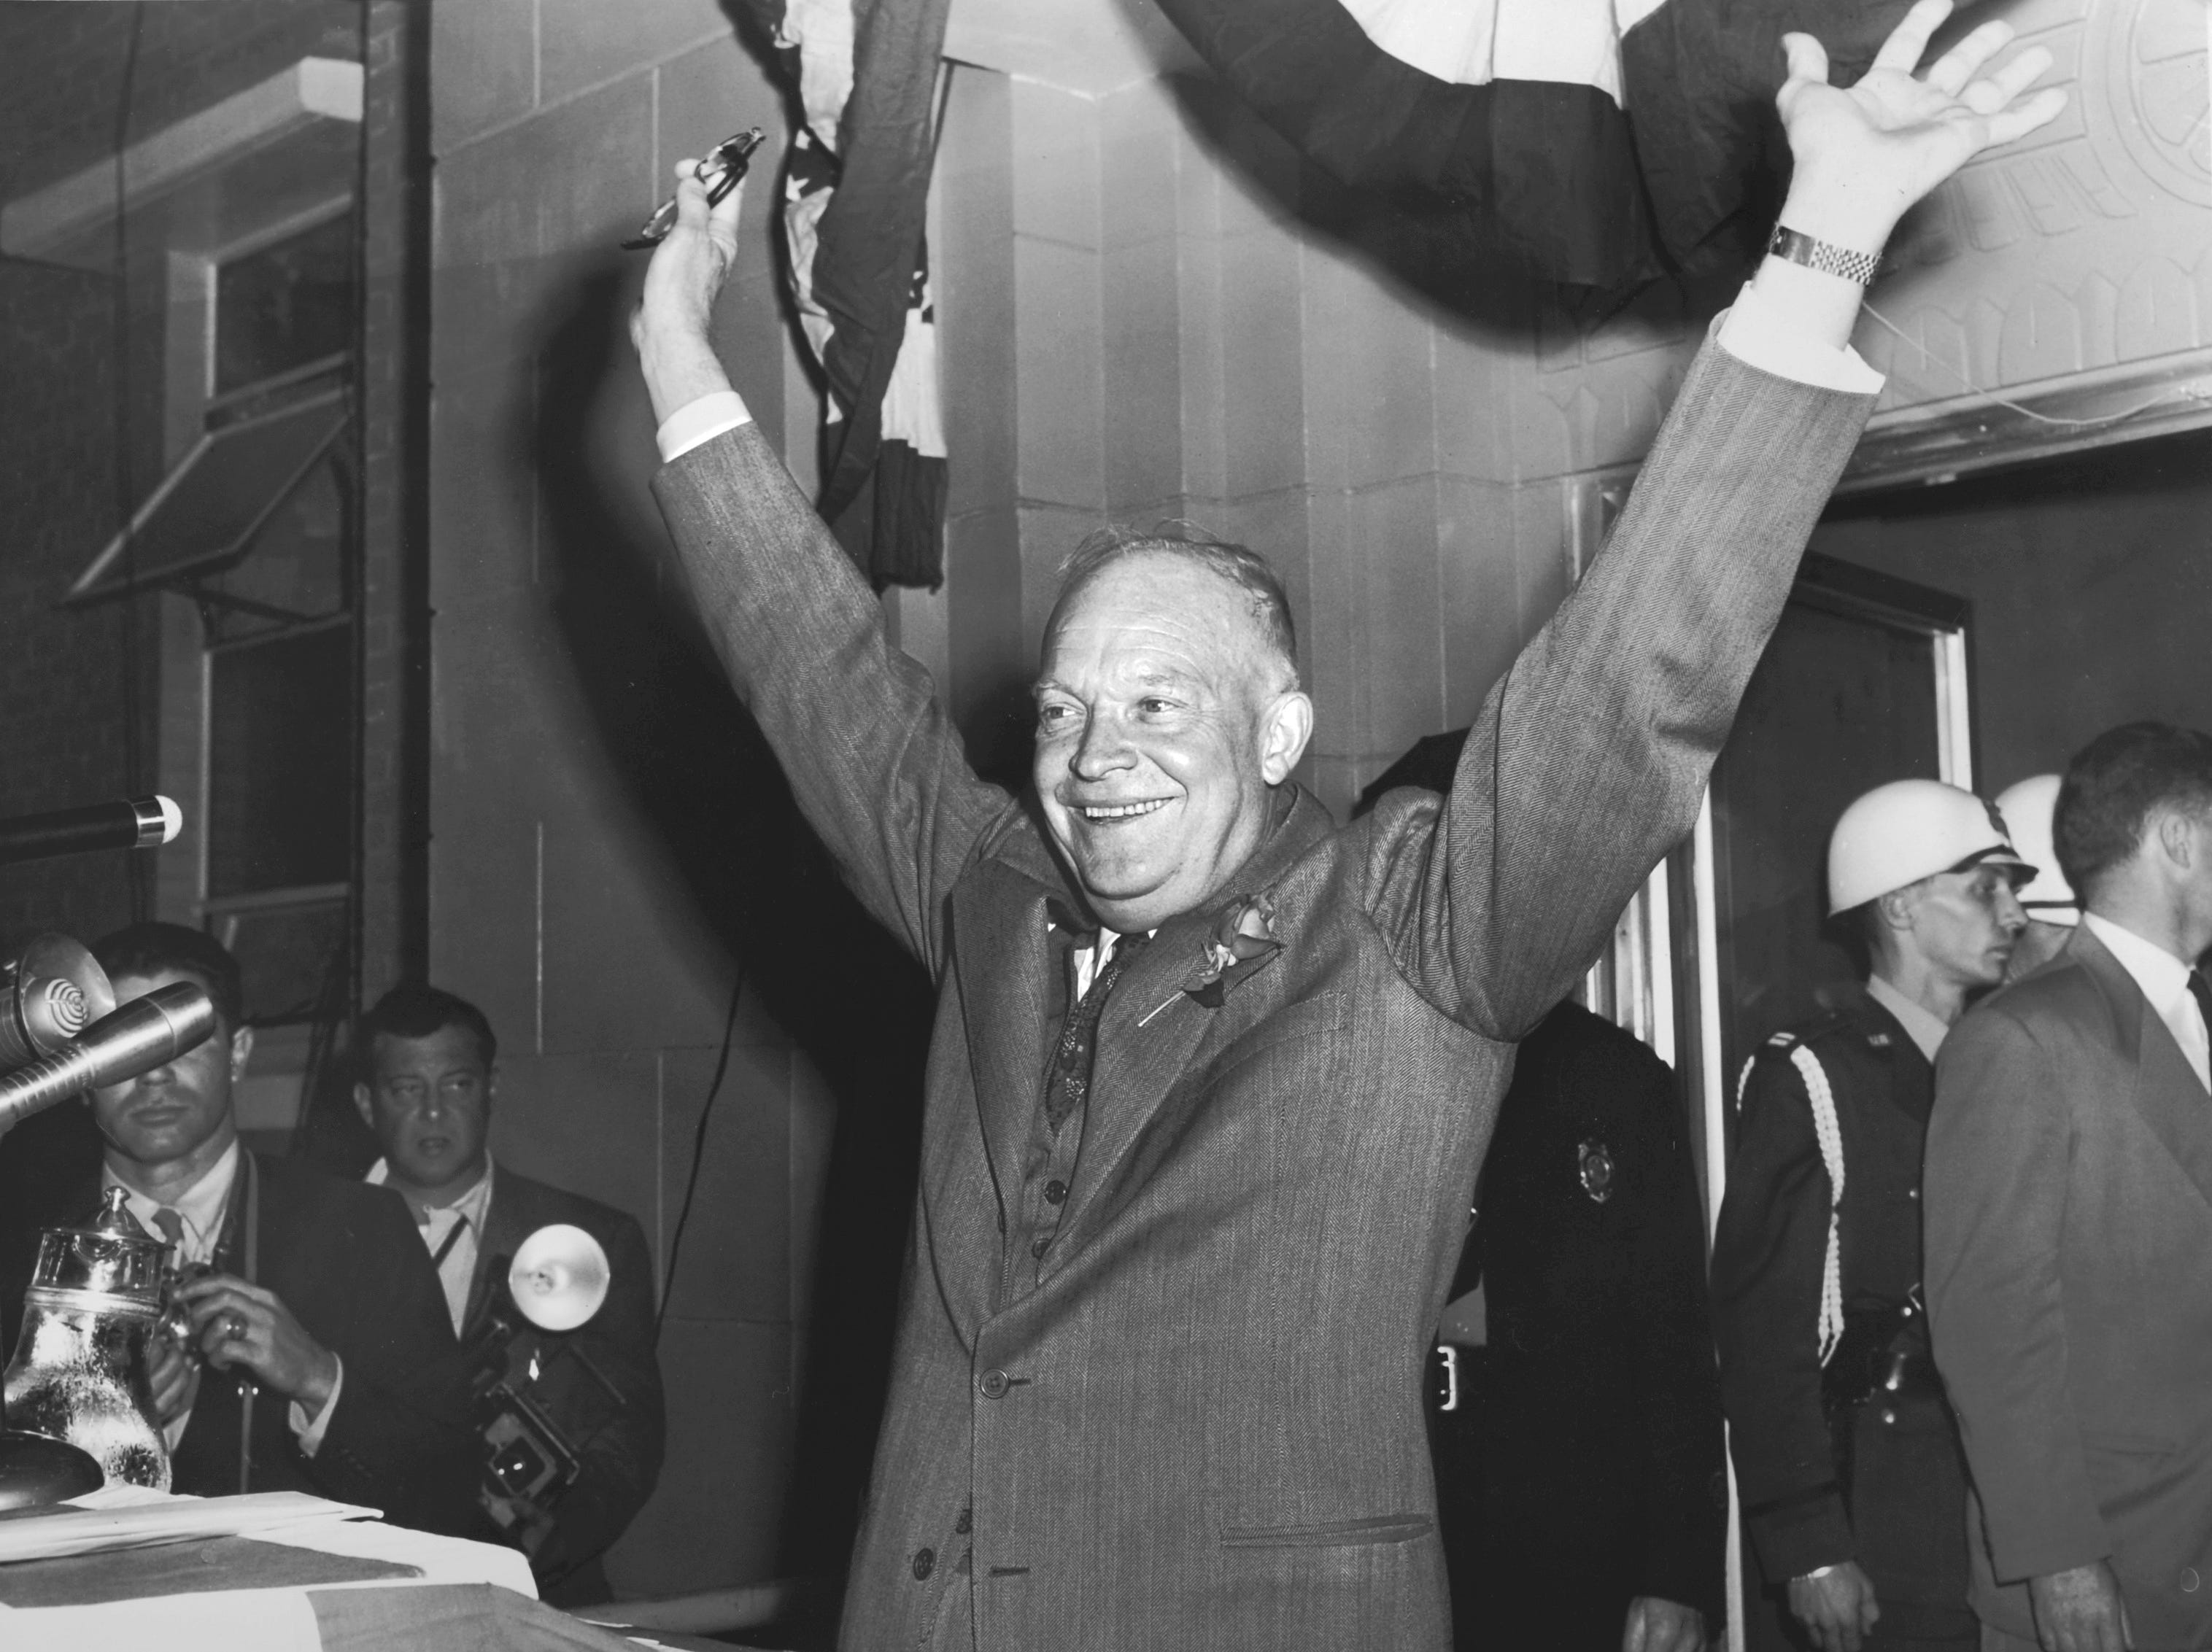 """Republican Presidential nominee Gen. Dwight D. Eisenhower waves to the crowd during an Oct. 15, 1952 campaign appearance at Knoxville's Municipal Airport. The News Sentinel account noted that Ike sported a red rose on his lapel and  """"appeared to be wearing some kind of make-up, possibly for the benefit of motion picture and television cameras."""""""